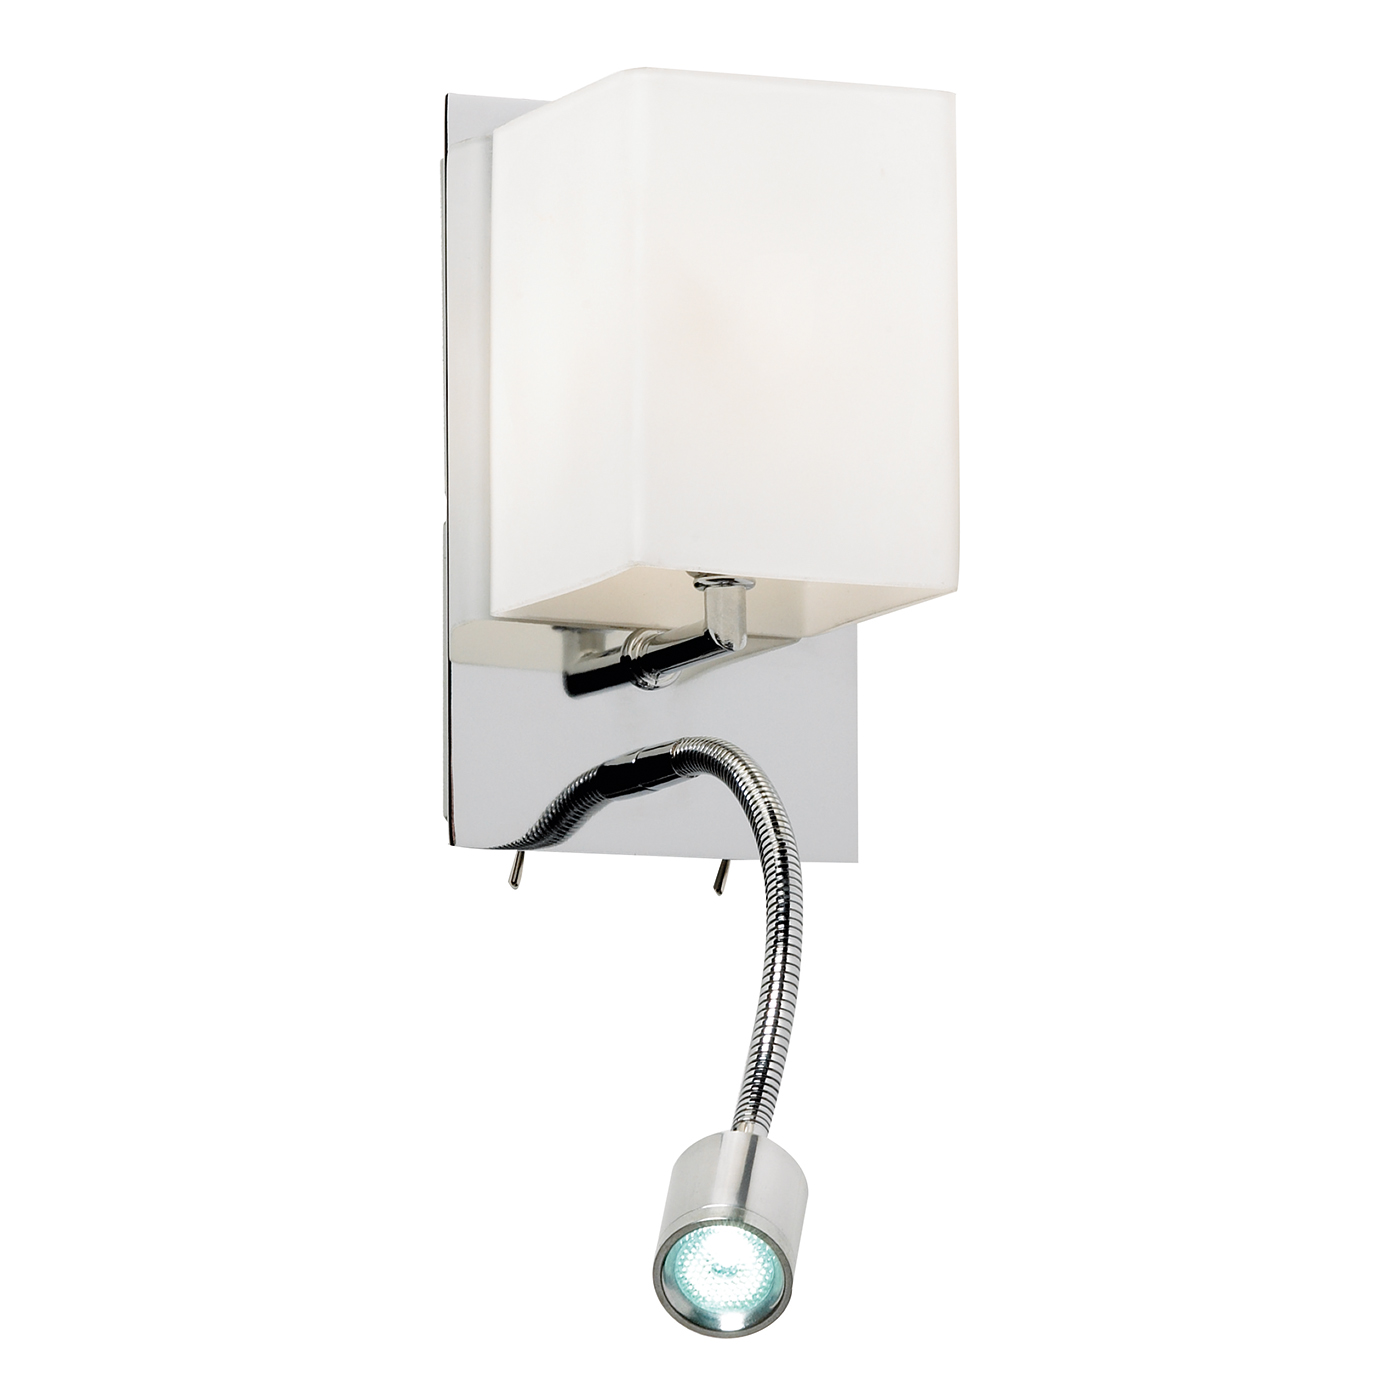 Endon Cava 1lt wall reading light 33W & 3W Chrome effect plate & opal glass